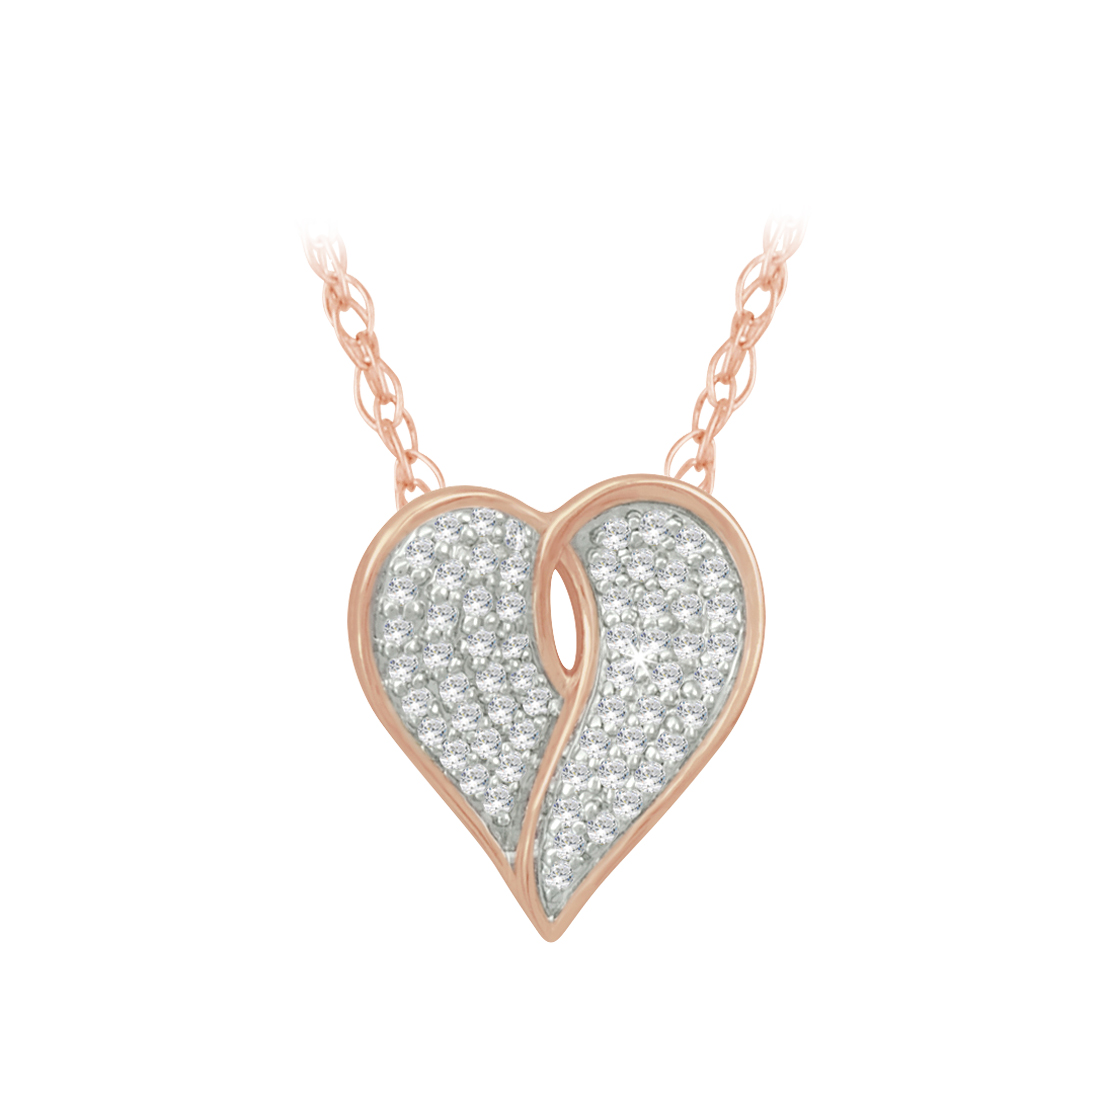 Rose gold heart pendant h williams jewellery rose gold heart pendant request more info mozeypictures Image collections